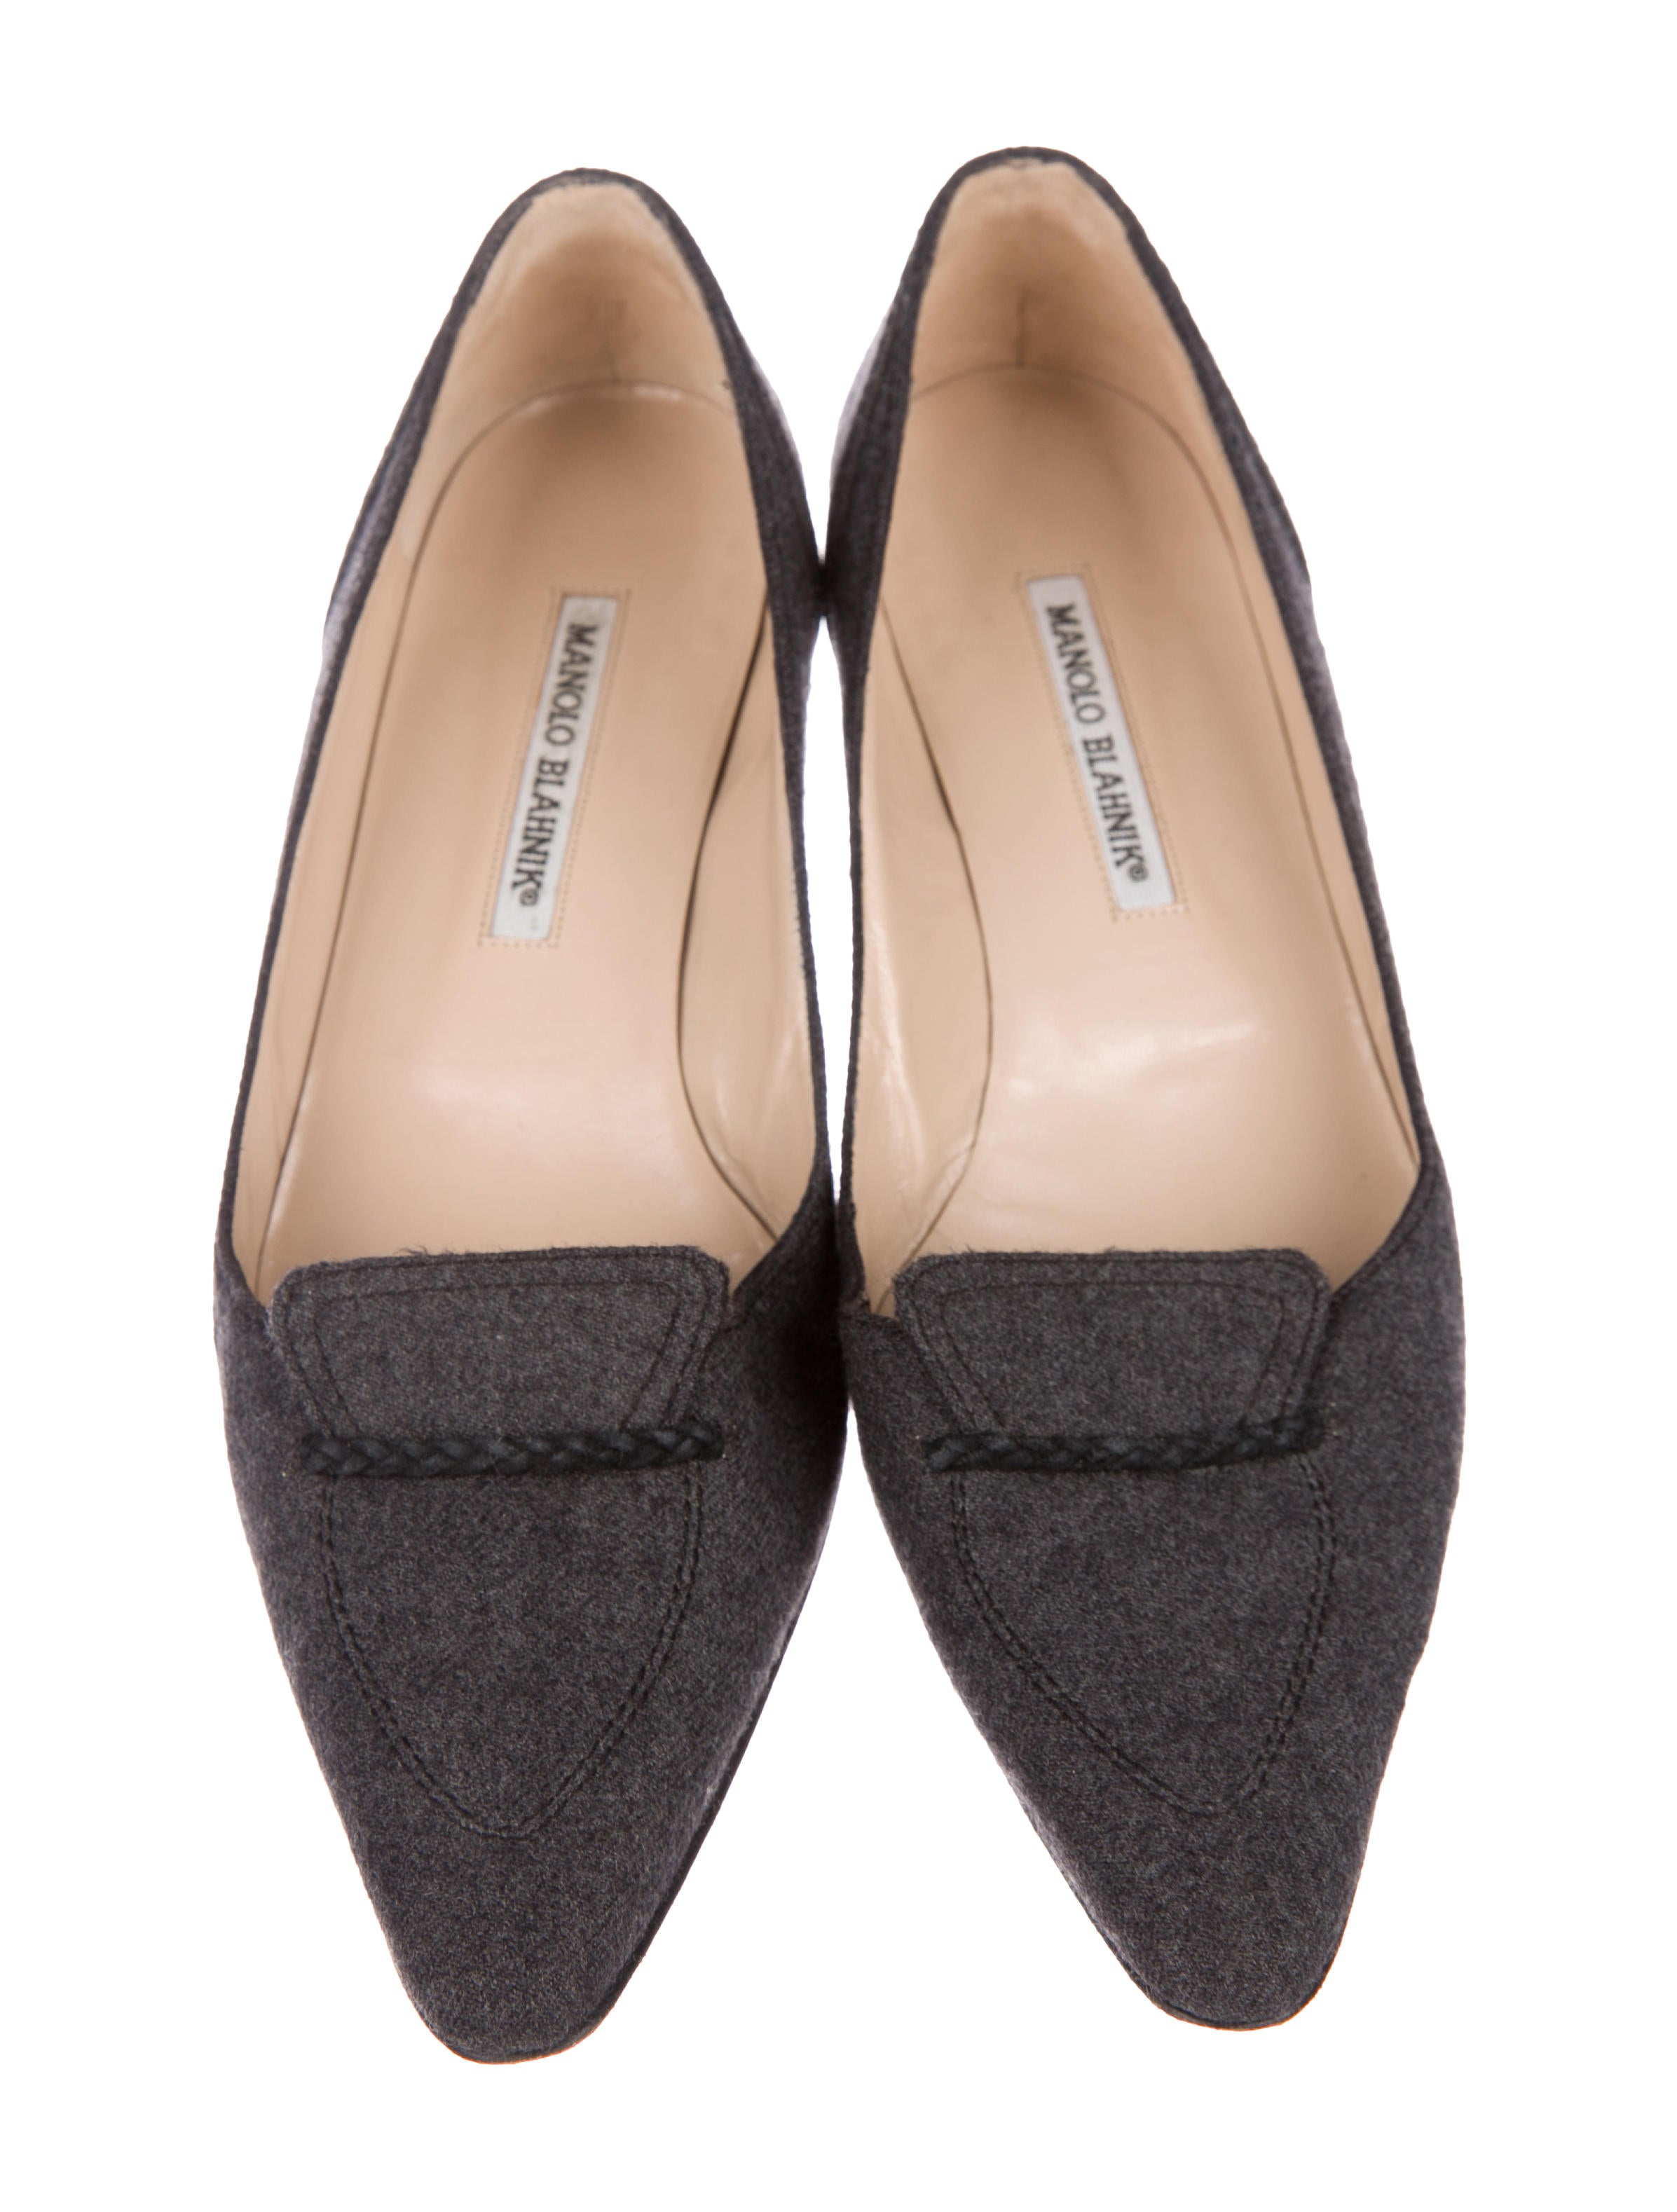 Manolo Blahnik Felt Pointed-Toe Flats outlet factory outlet buy cheap shop offer from china cheap price IxlgCtSfv